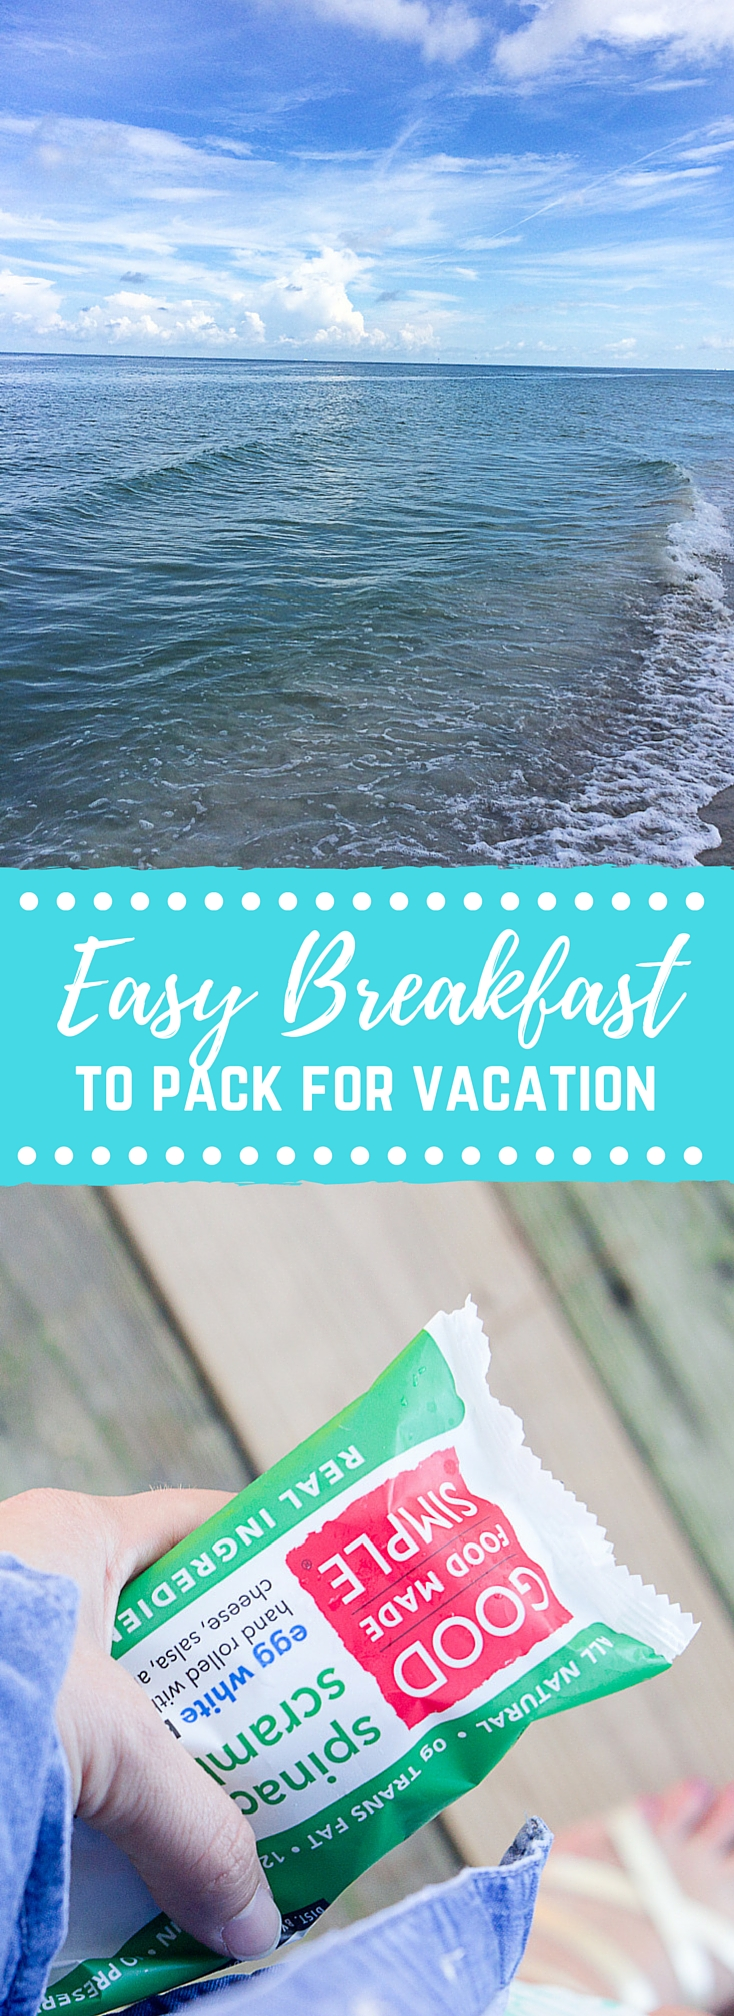 Are you headed to the beach or mountains this summer for a little getaway? As you're packing your bags don't forget to pack food to stock the fridge, freezer, and pantry before you arrive to your destination. Here's a short list of 4 easy breakfast ideas to pack for family vacations.